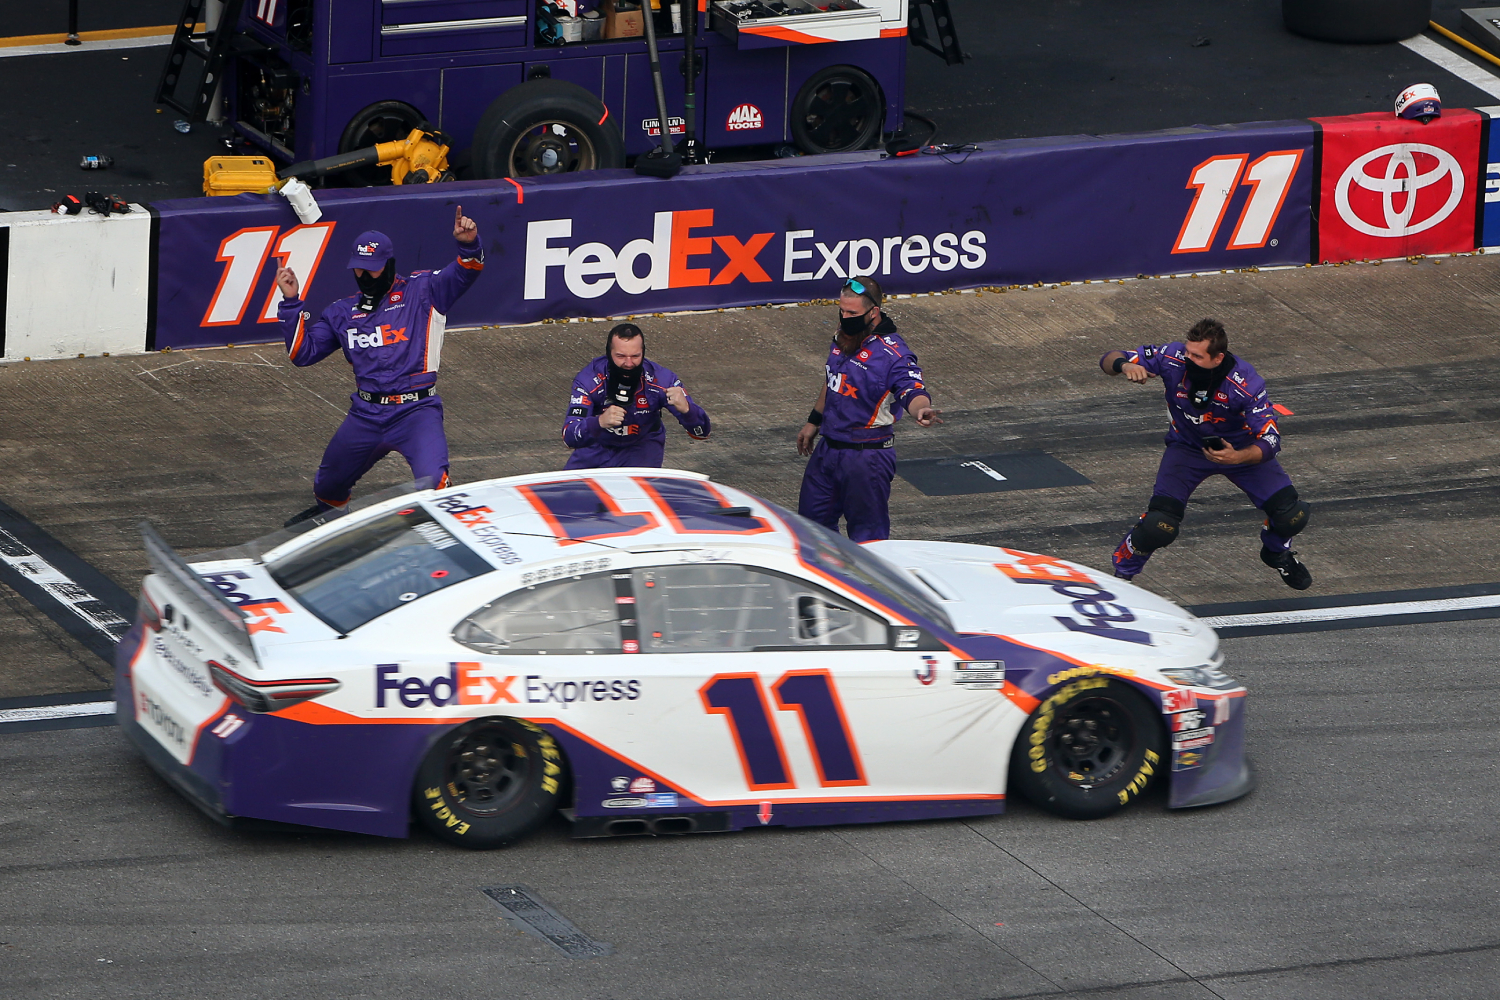 Denny Hamlin knew he was destined for racing at age 7.